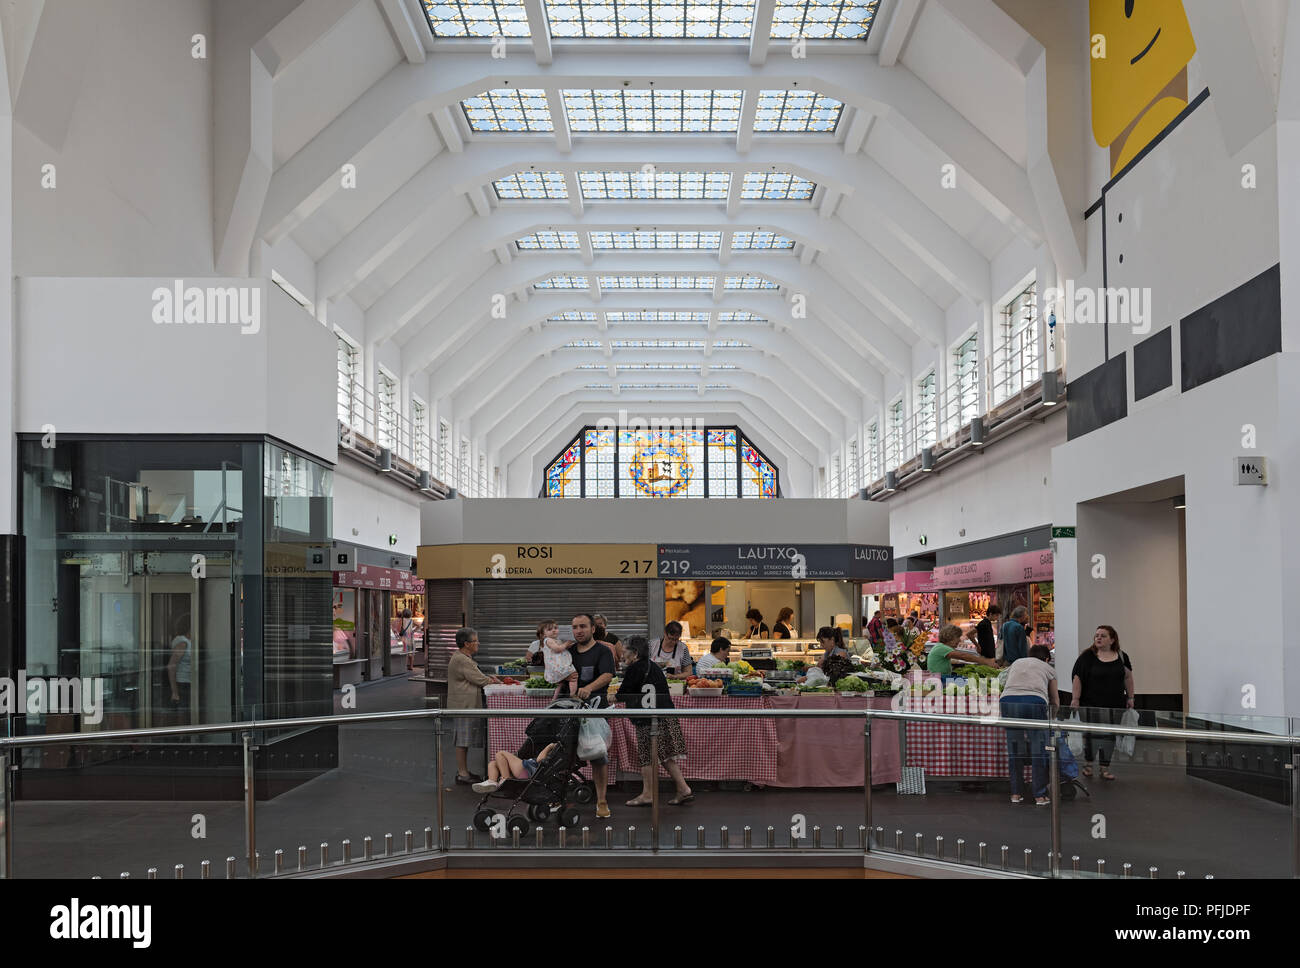 View of the stands in the market hall Ribera, Bilbao, Spain. - Stock Image